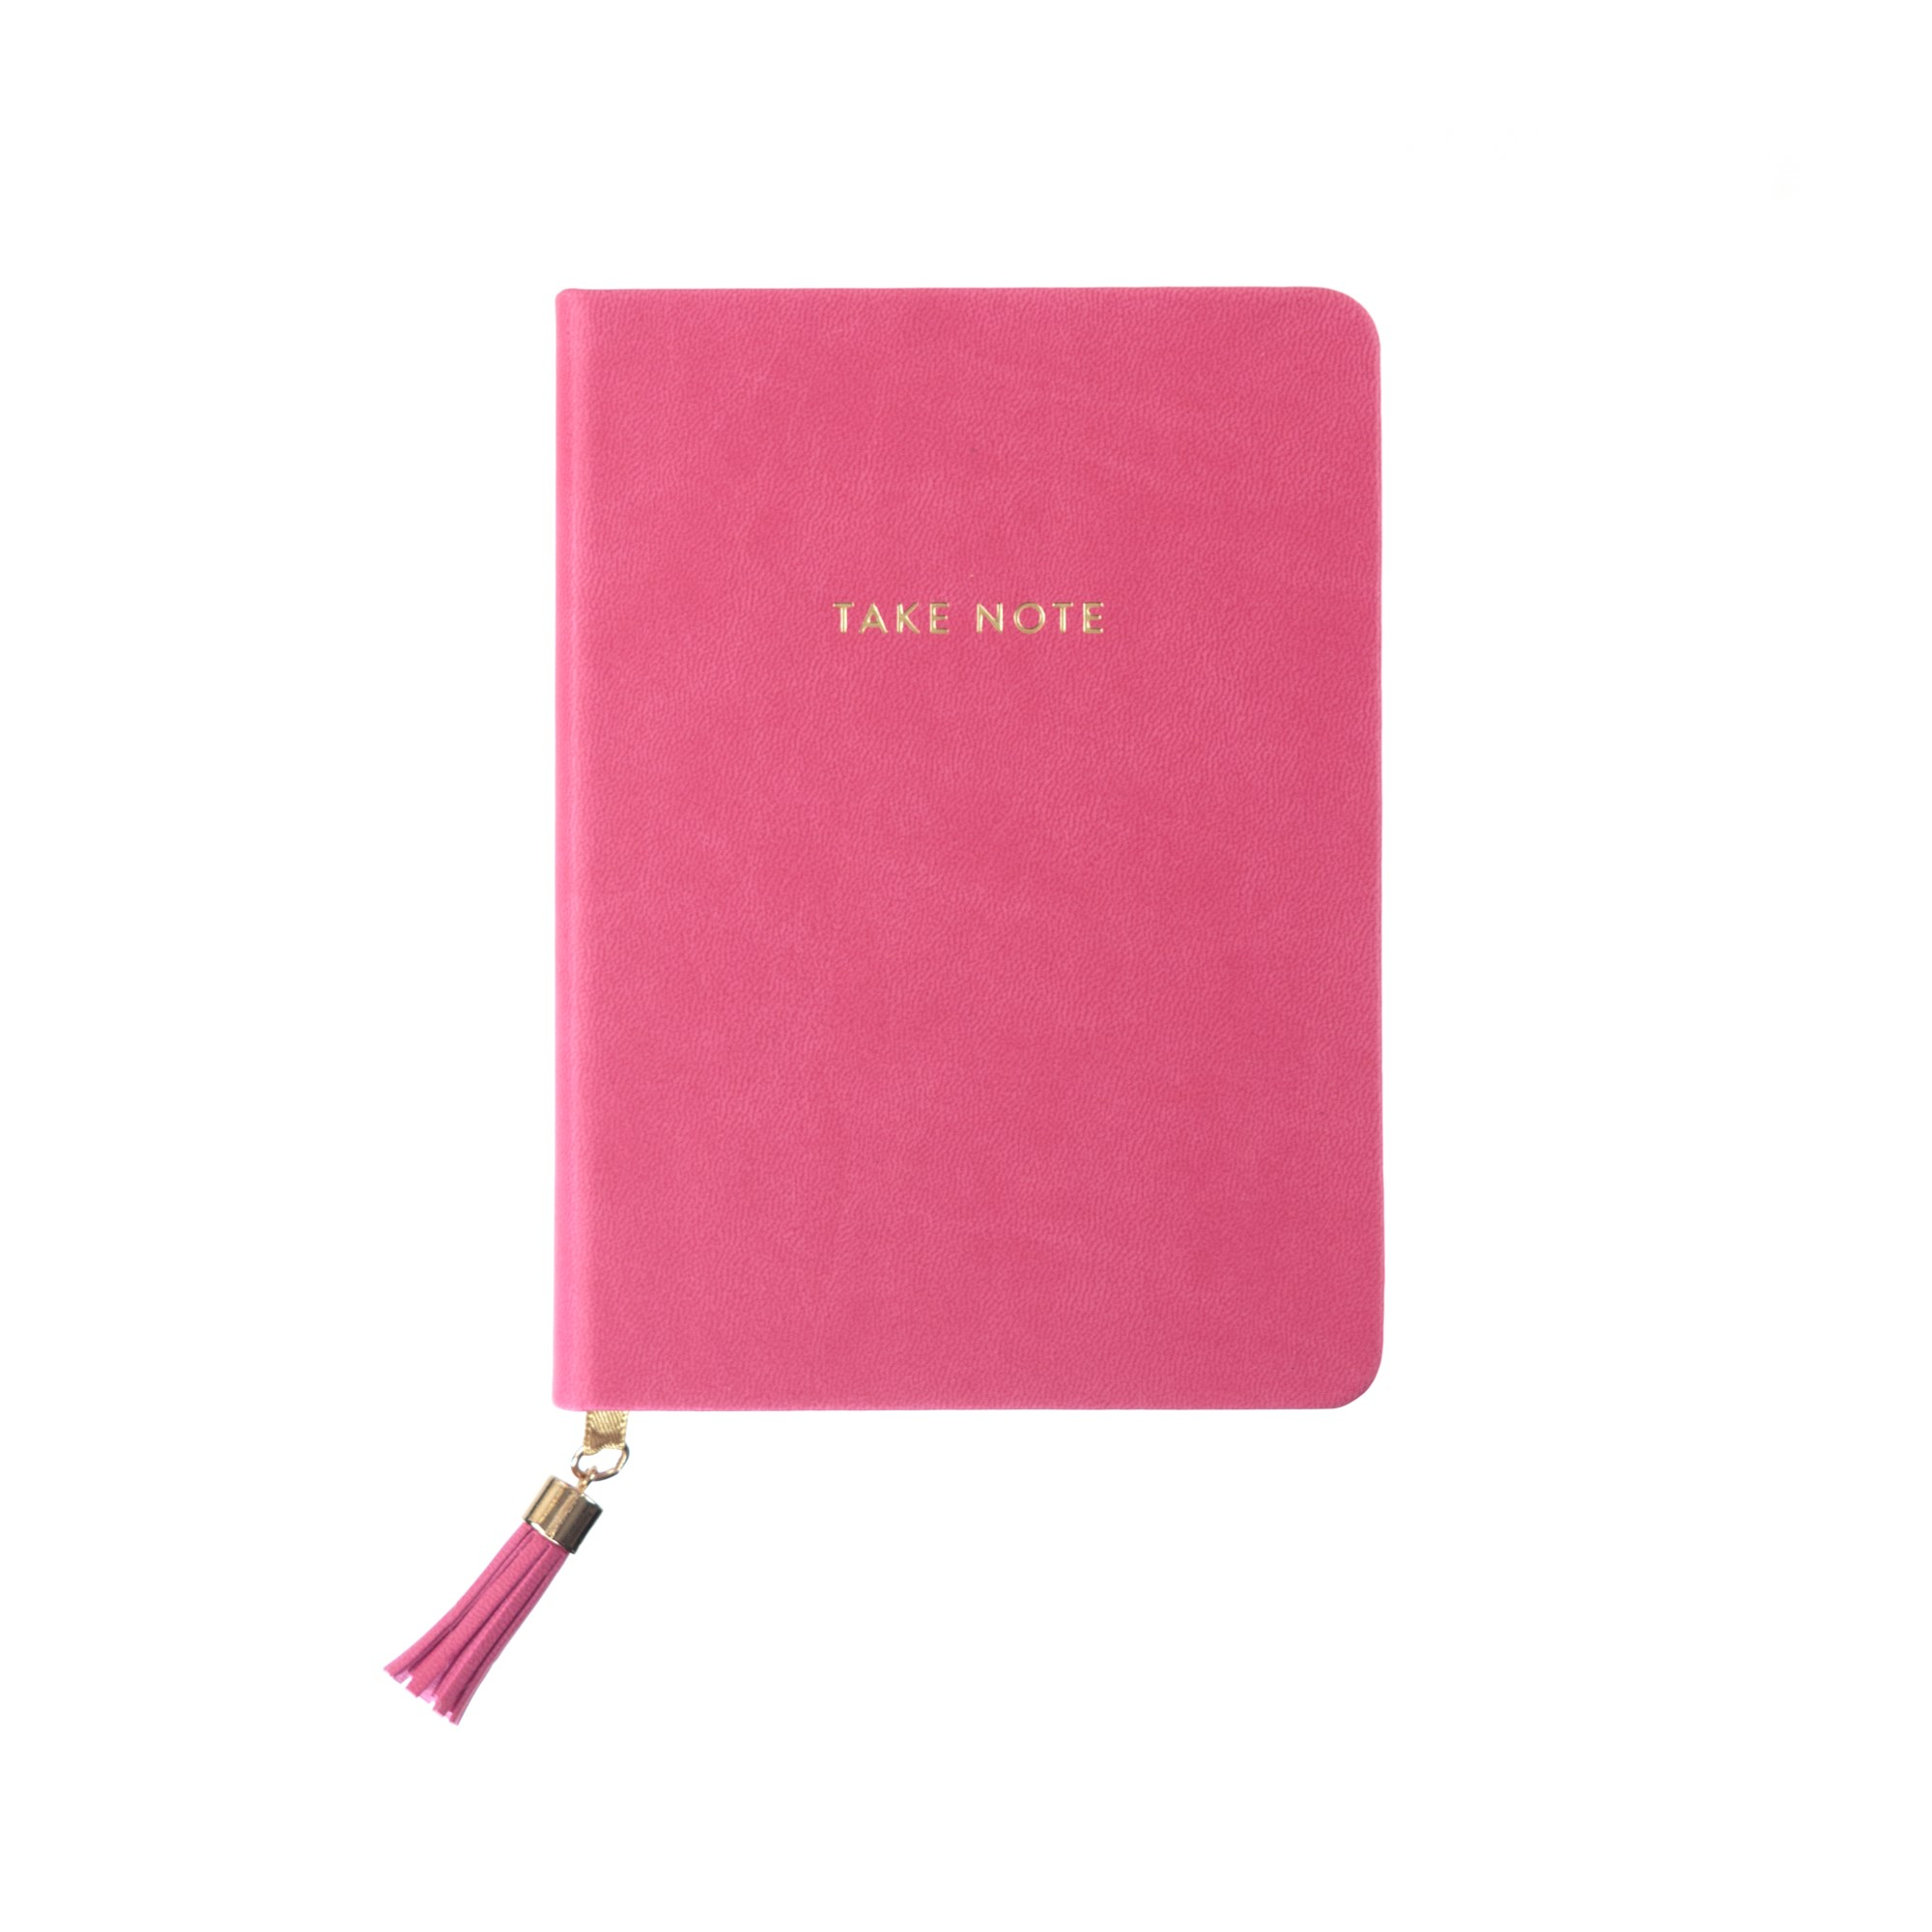 Tassel Journal: Pink Take Note (D320c)